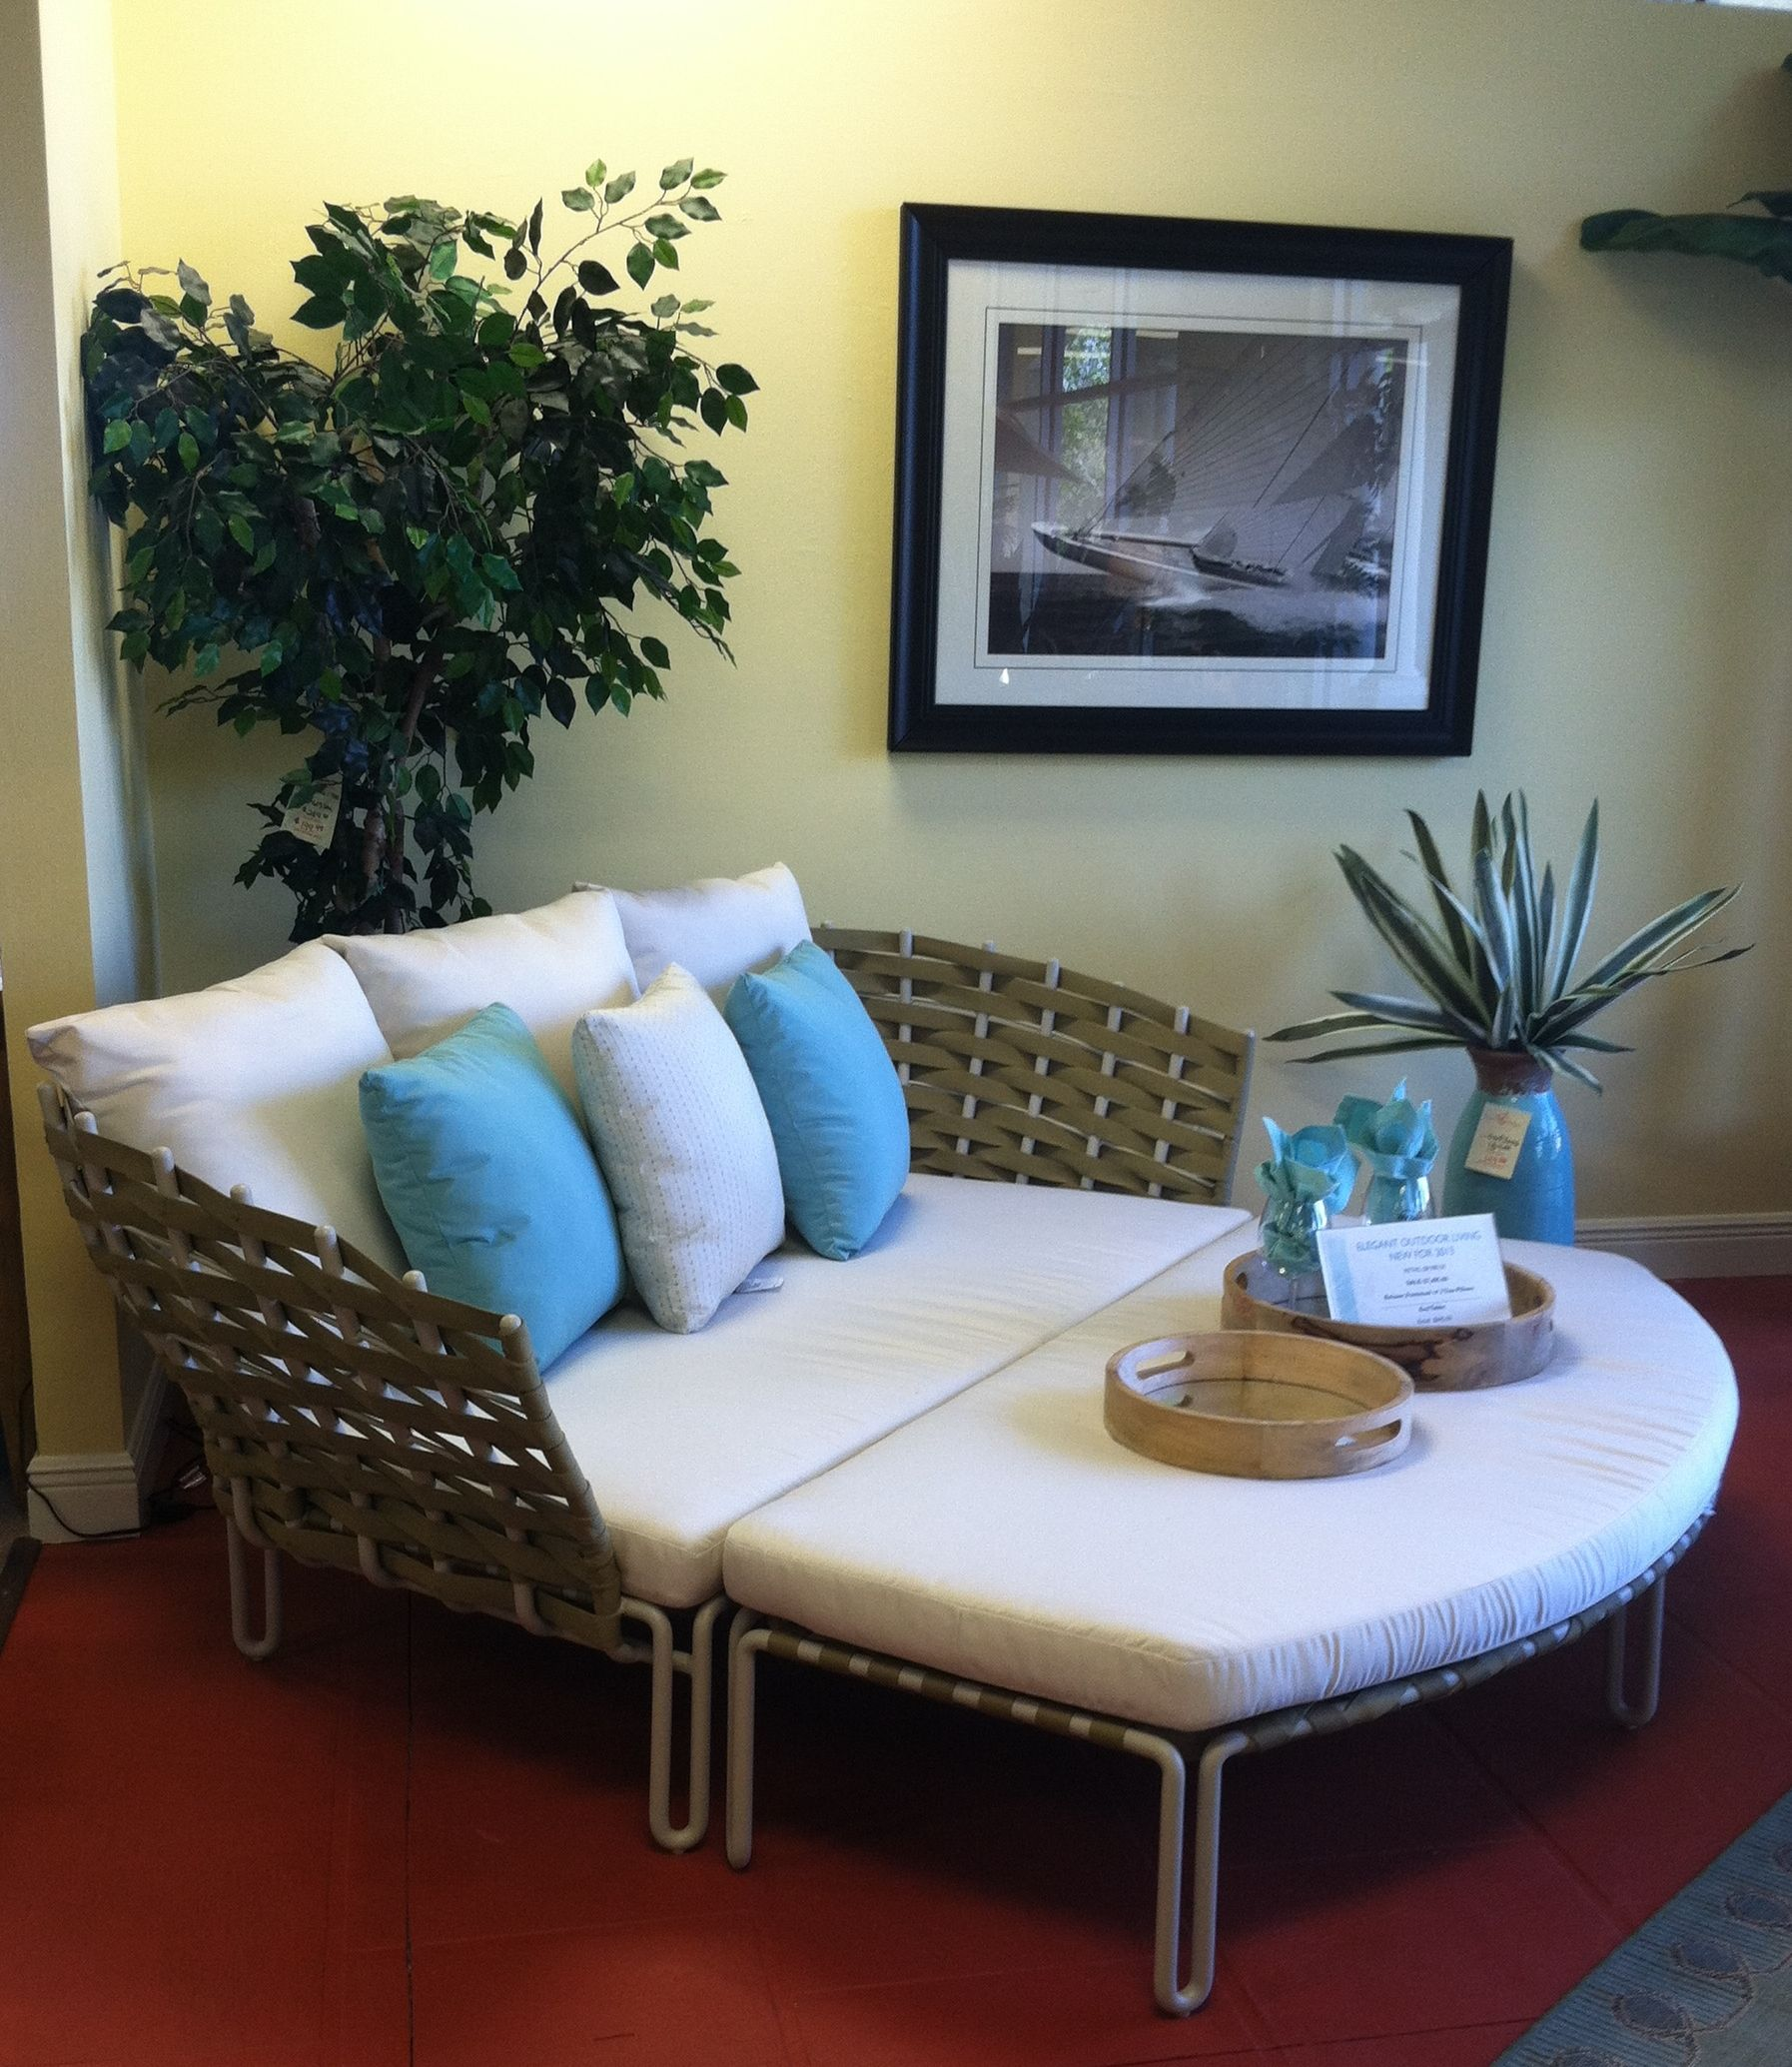 Patio Furniture Bonita Springs Fl: Gloster Source Relaxer With Footstool In Crème/Malt Frame